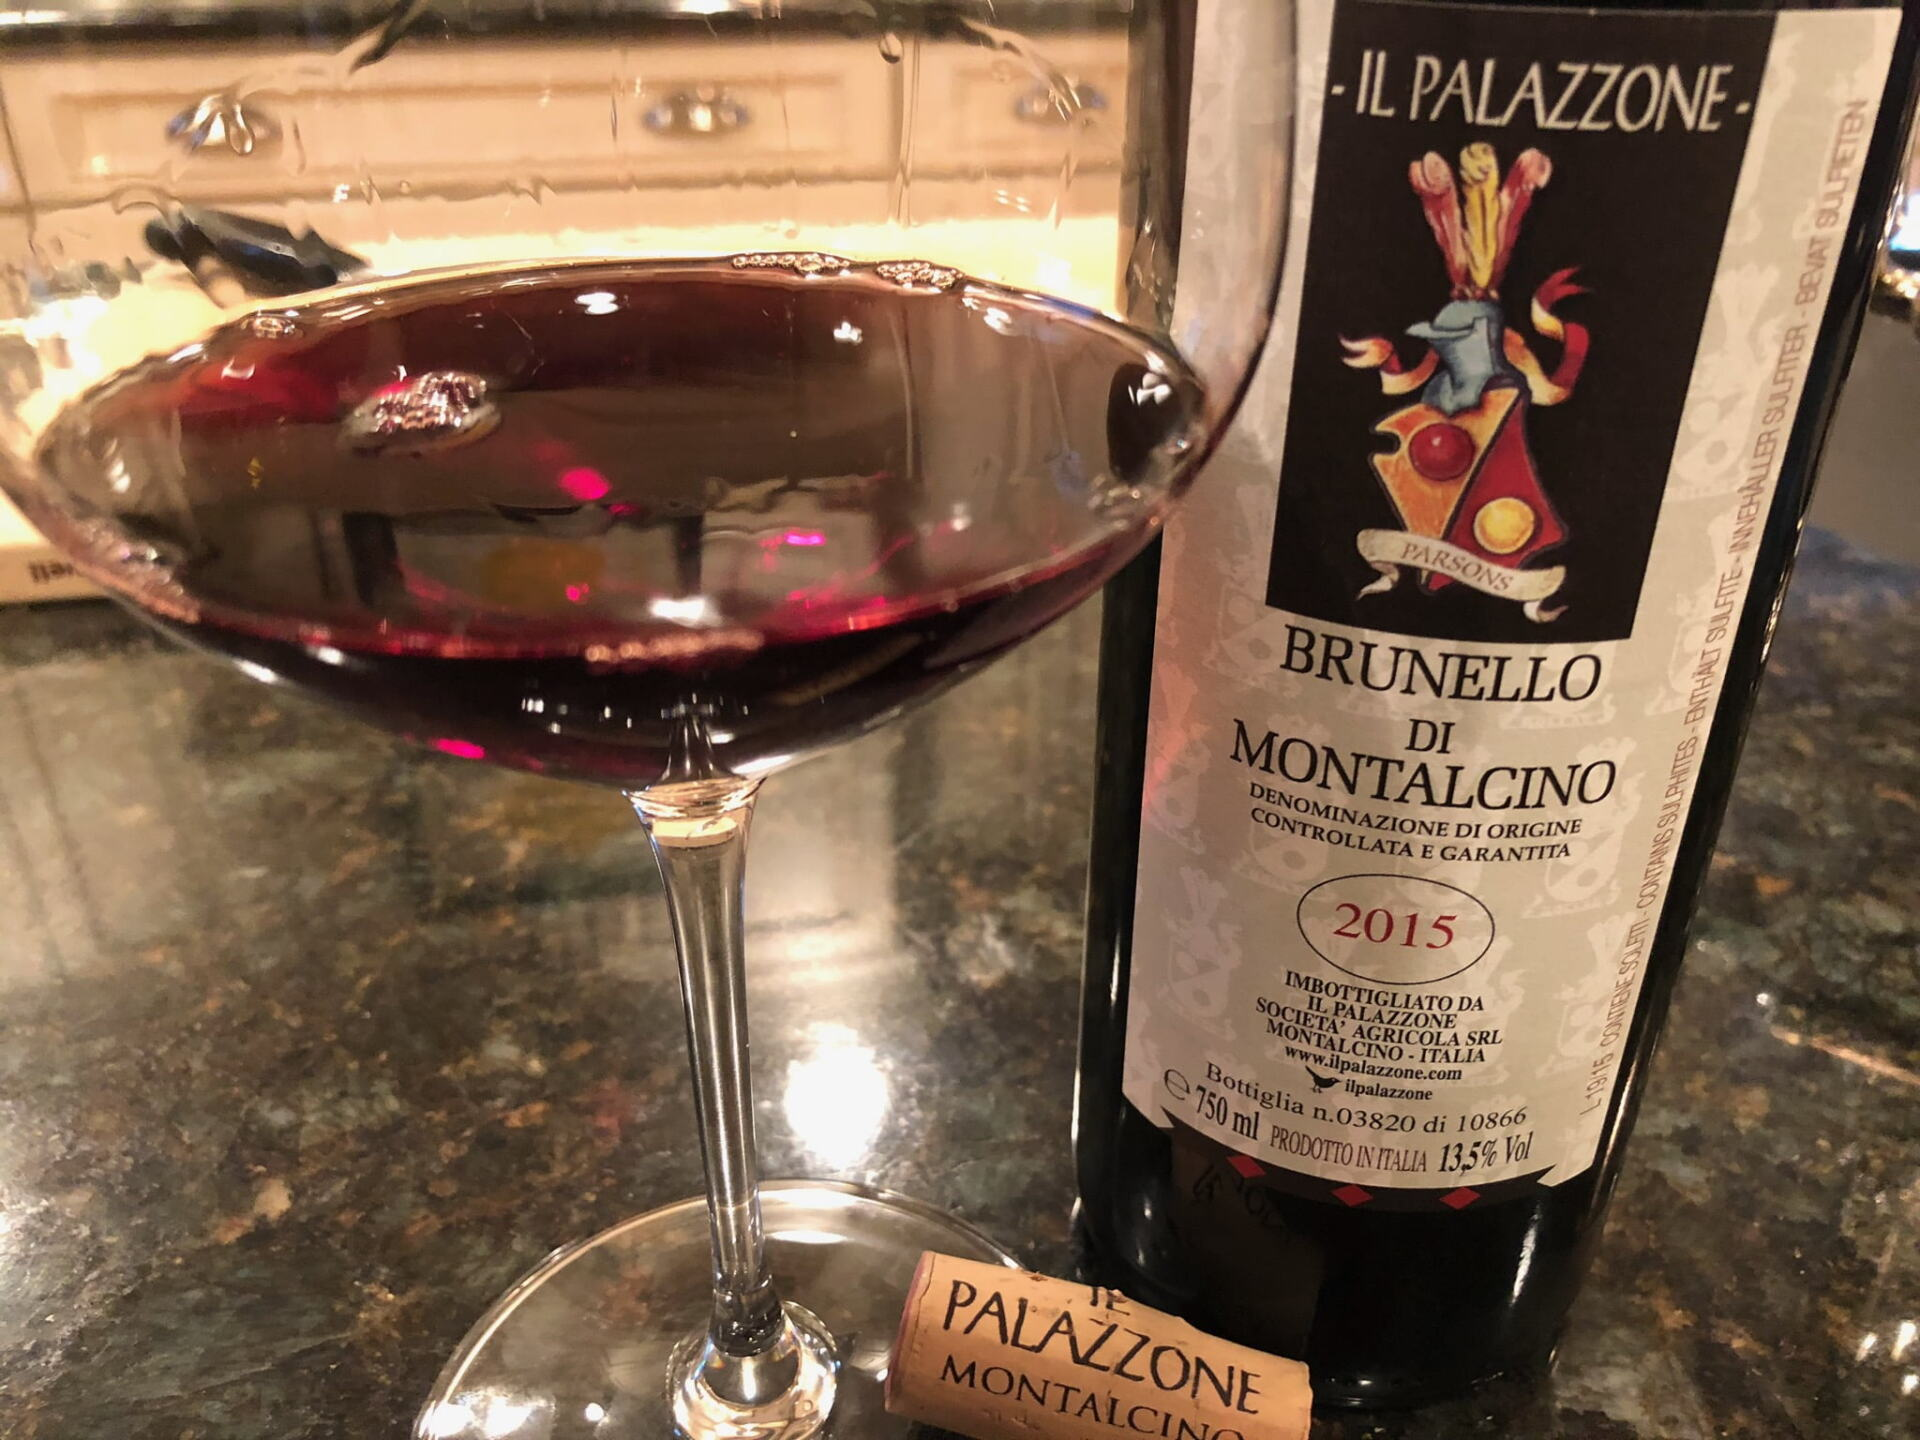 Brunello wine in a glass